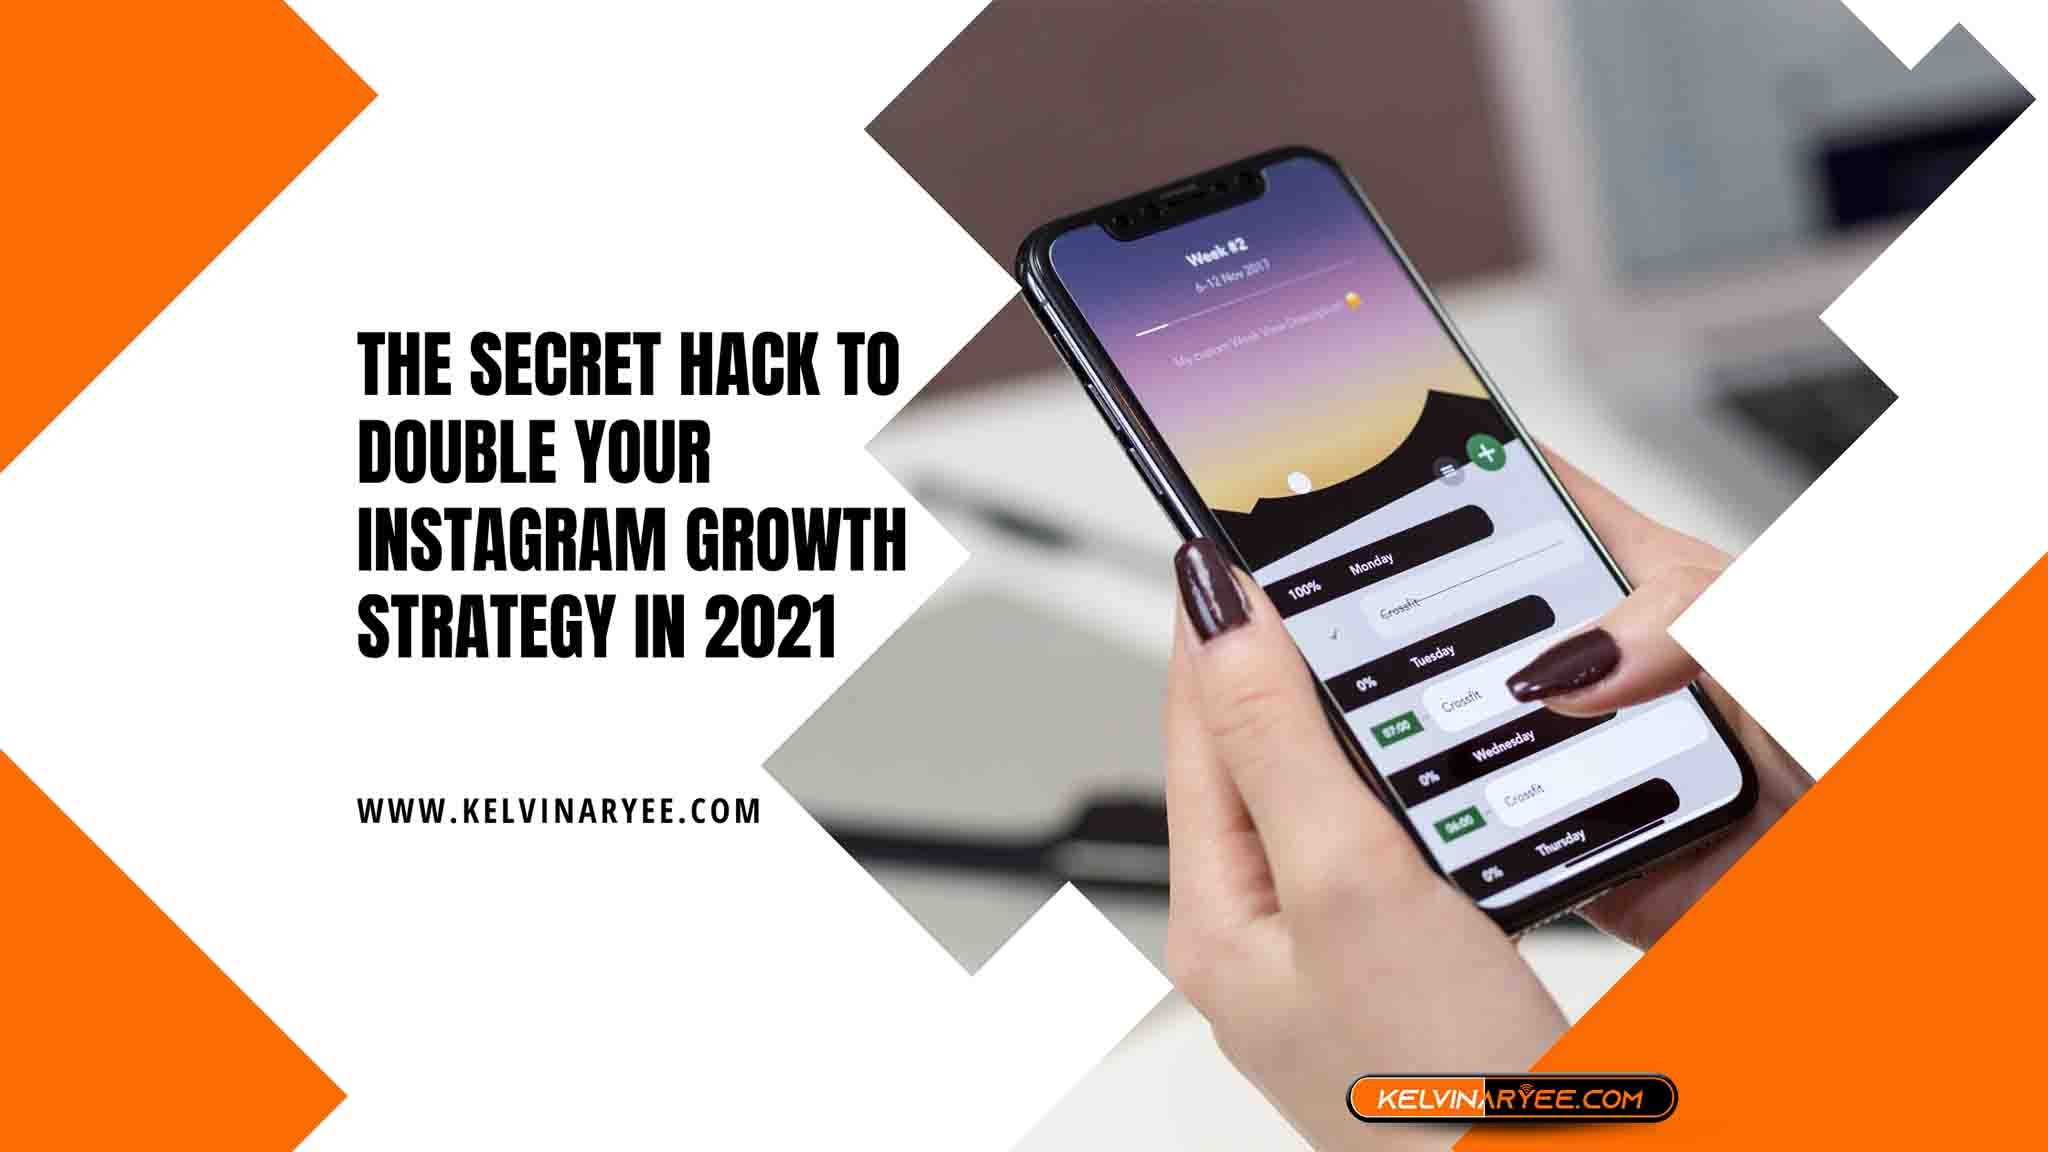 The Secret Hack to Double Your Instagram Growth Strategy In 2021